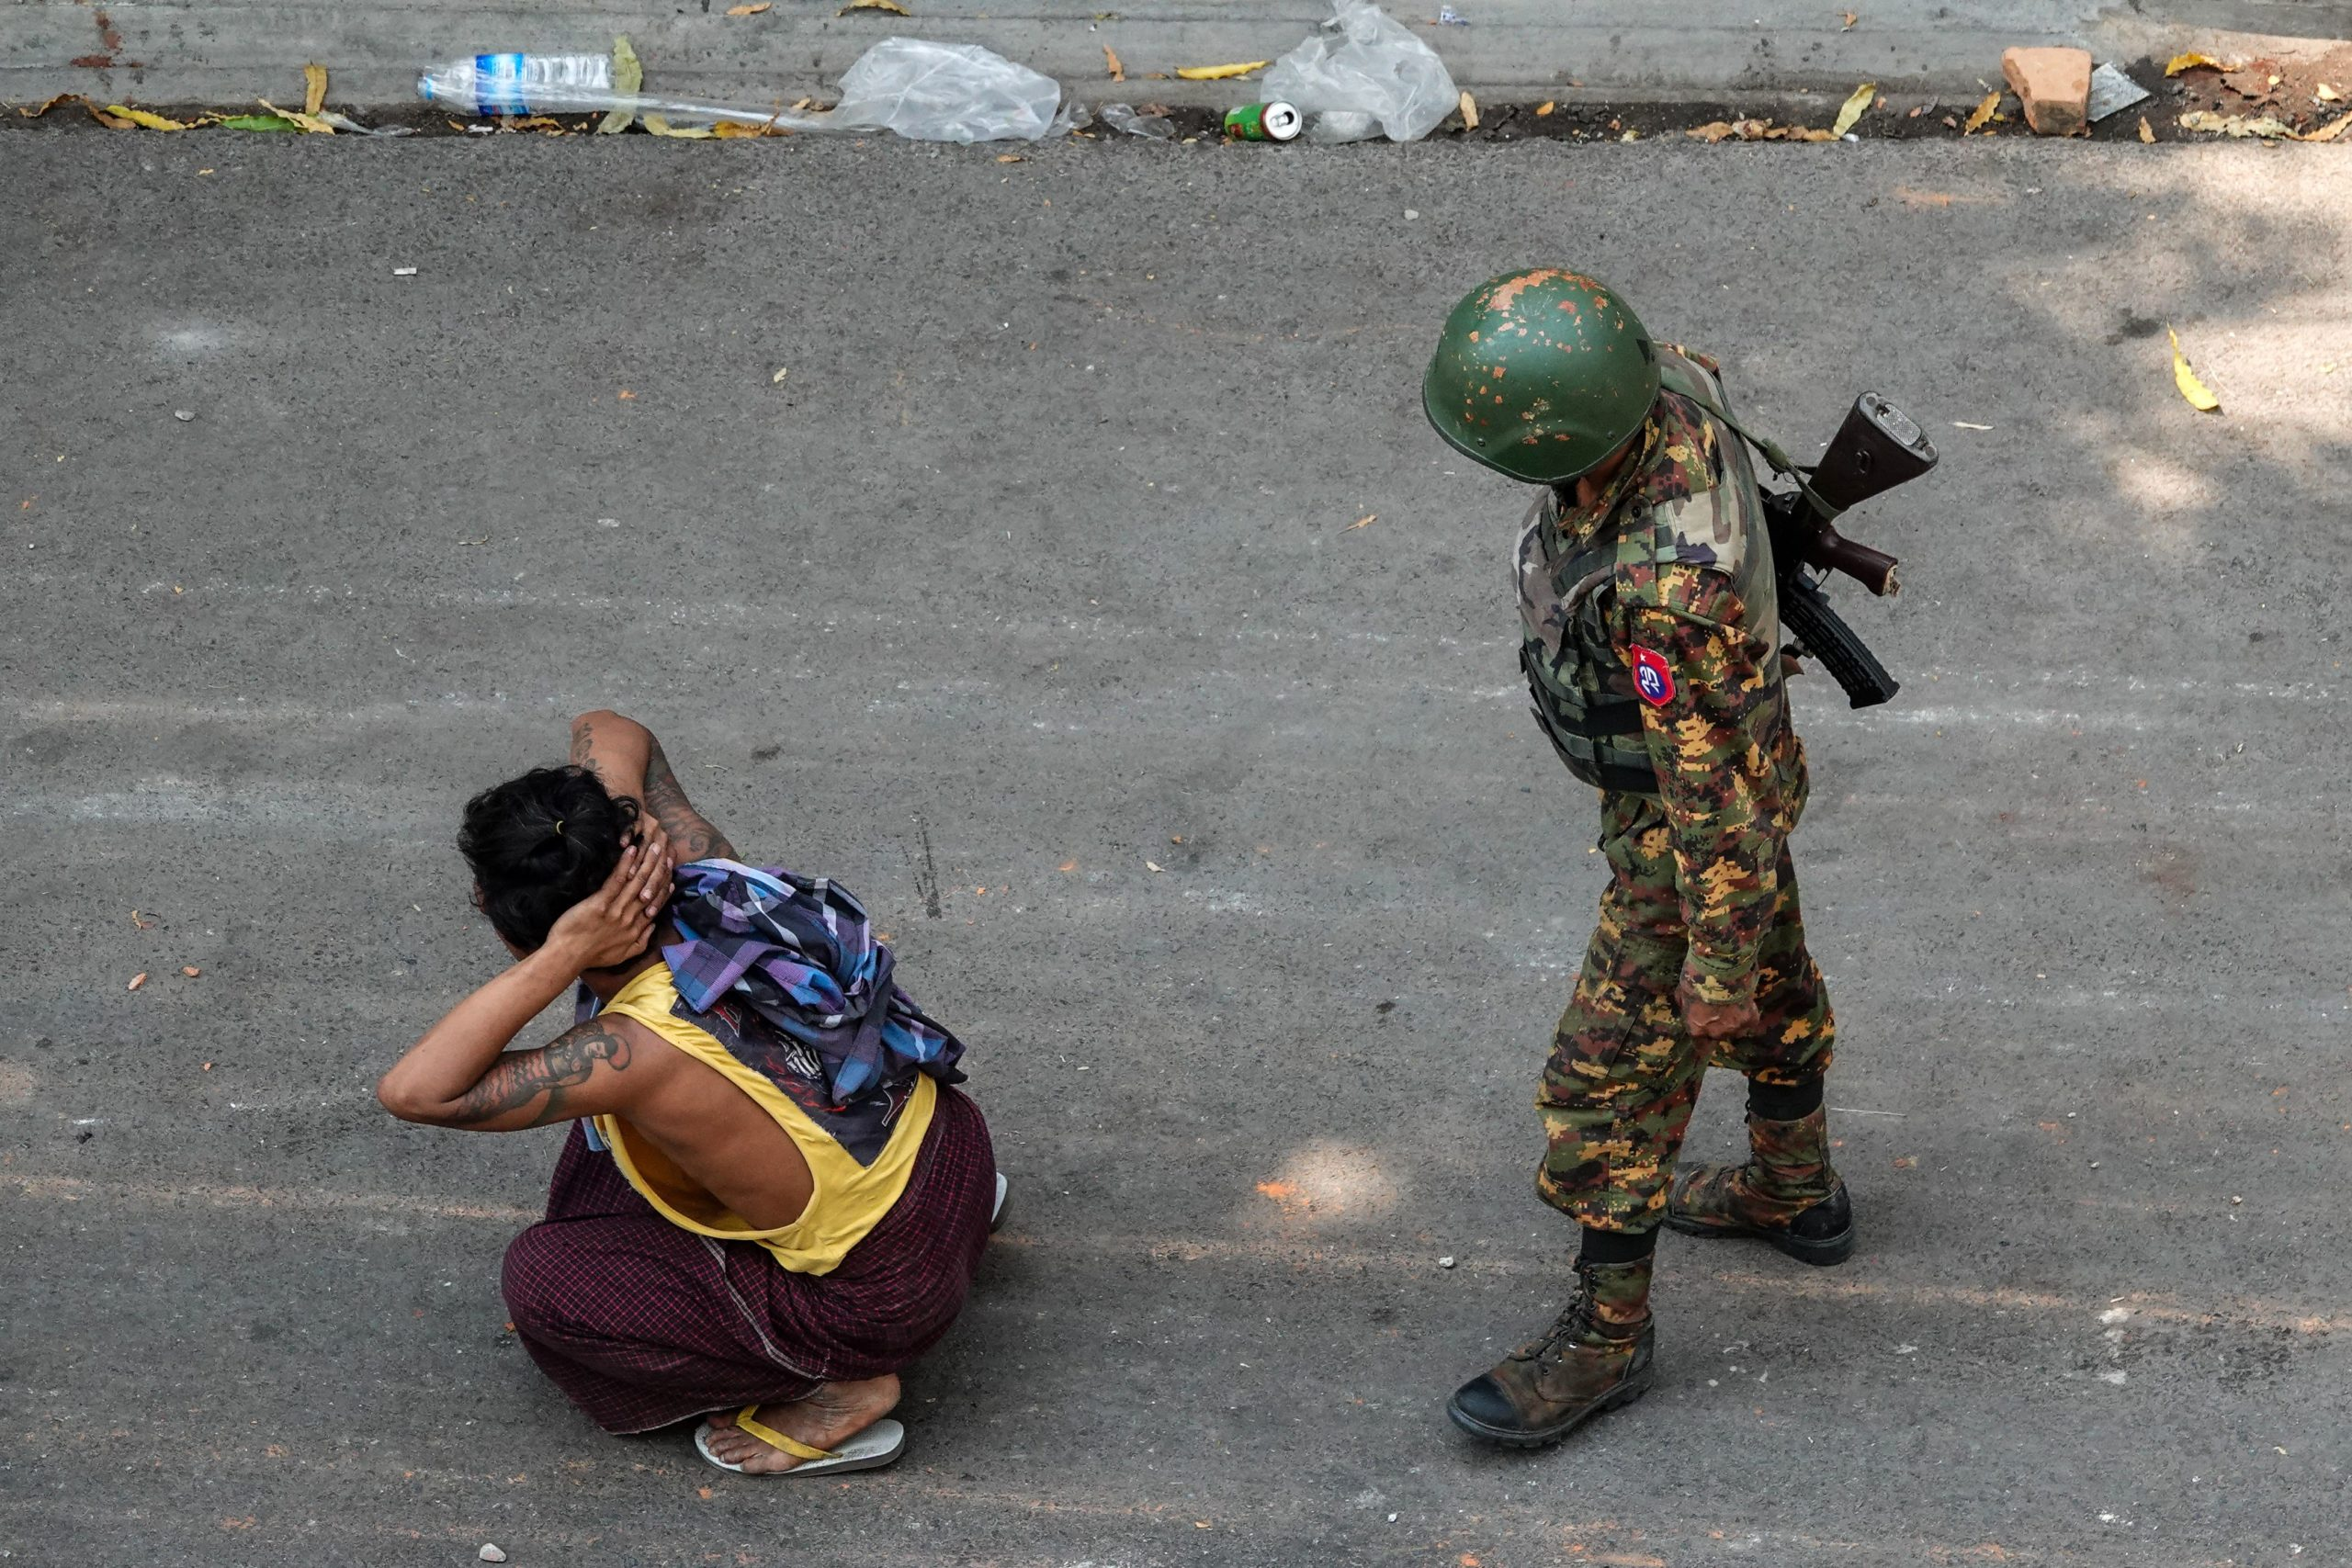 TOPSHOT - A soldier stands next to a detained man during a demonstration against the military coup in Mandalay on March 3, 2021. (Photo by STR / AFP) (Photo by STR/AFP via Getty Images)